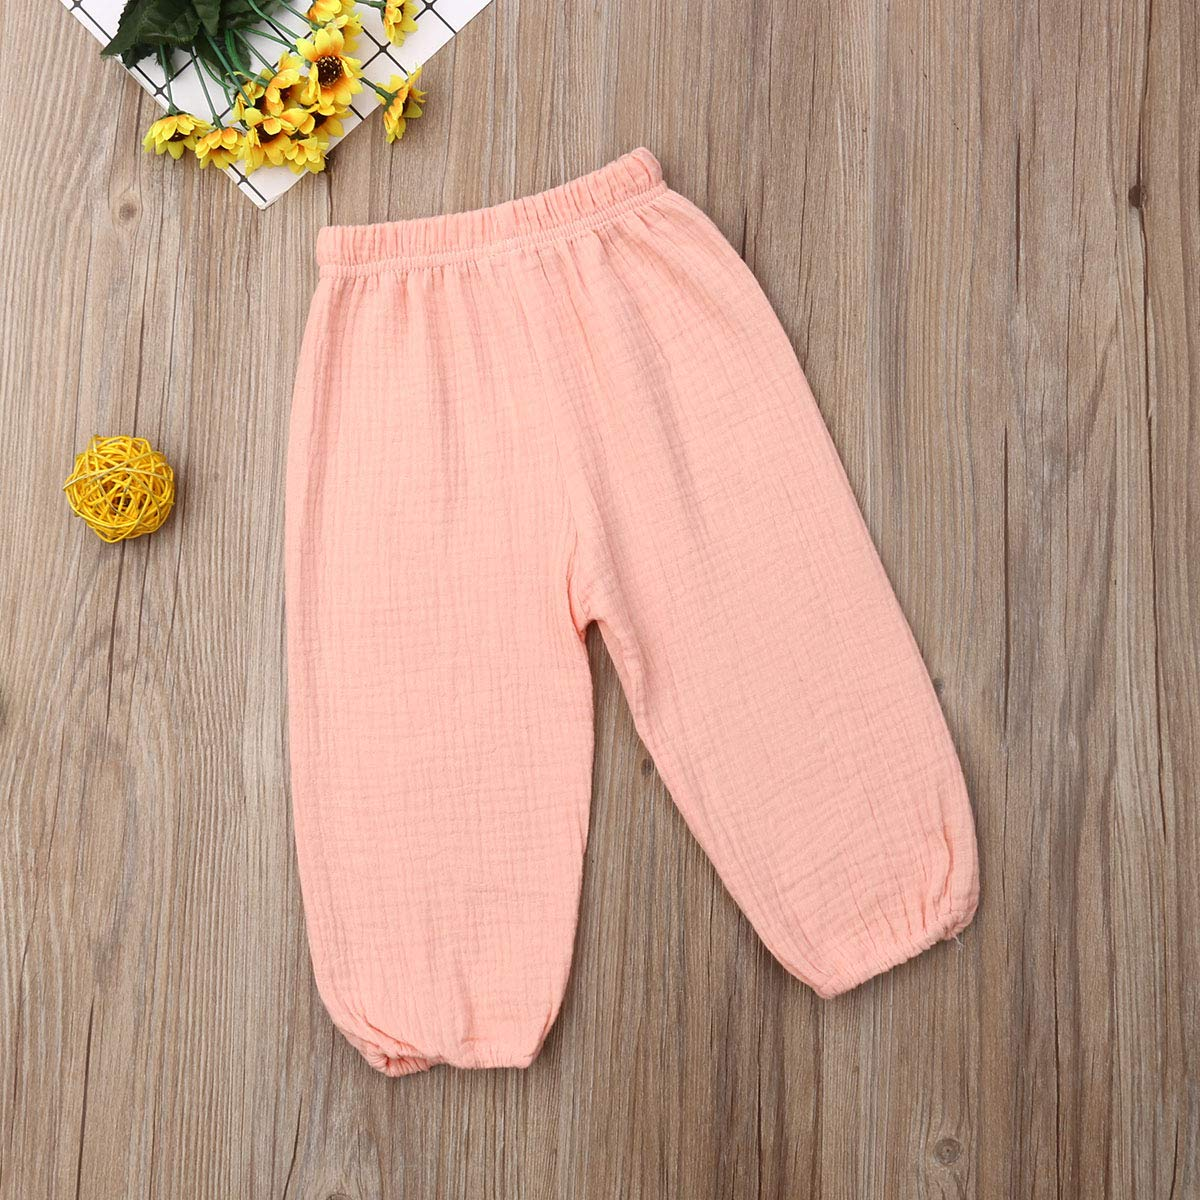 BULINGNA Cute Toddler Kids Baby Boy Girl Casual Eelastic Harem Long Pants Bloomers